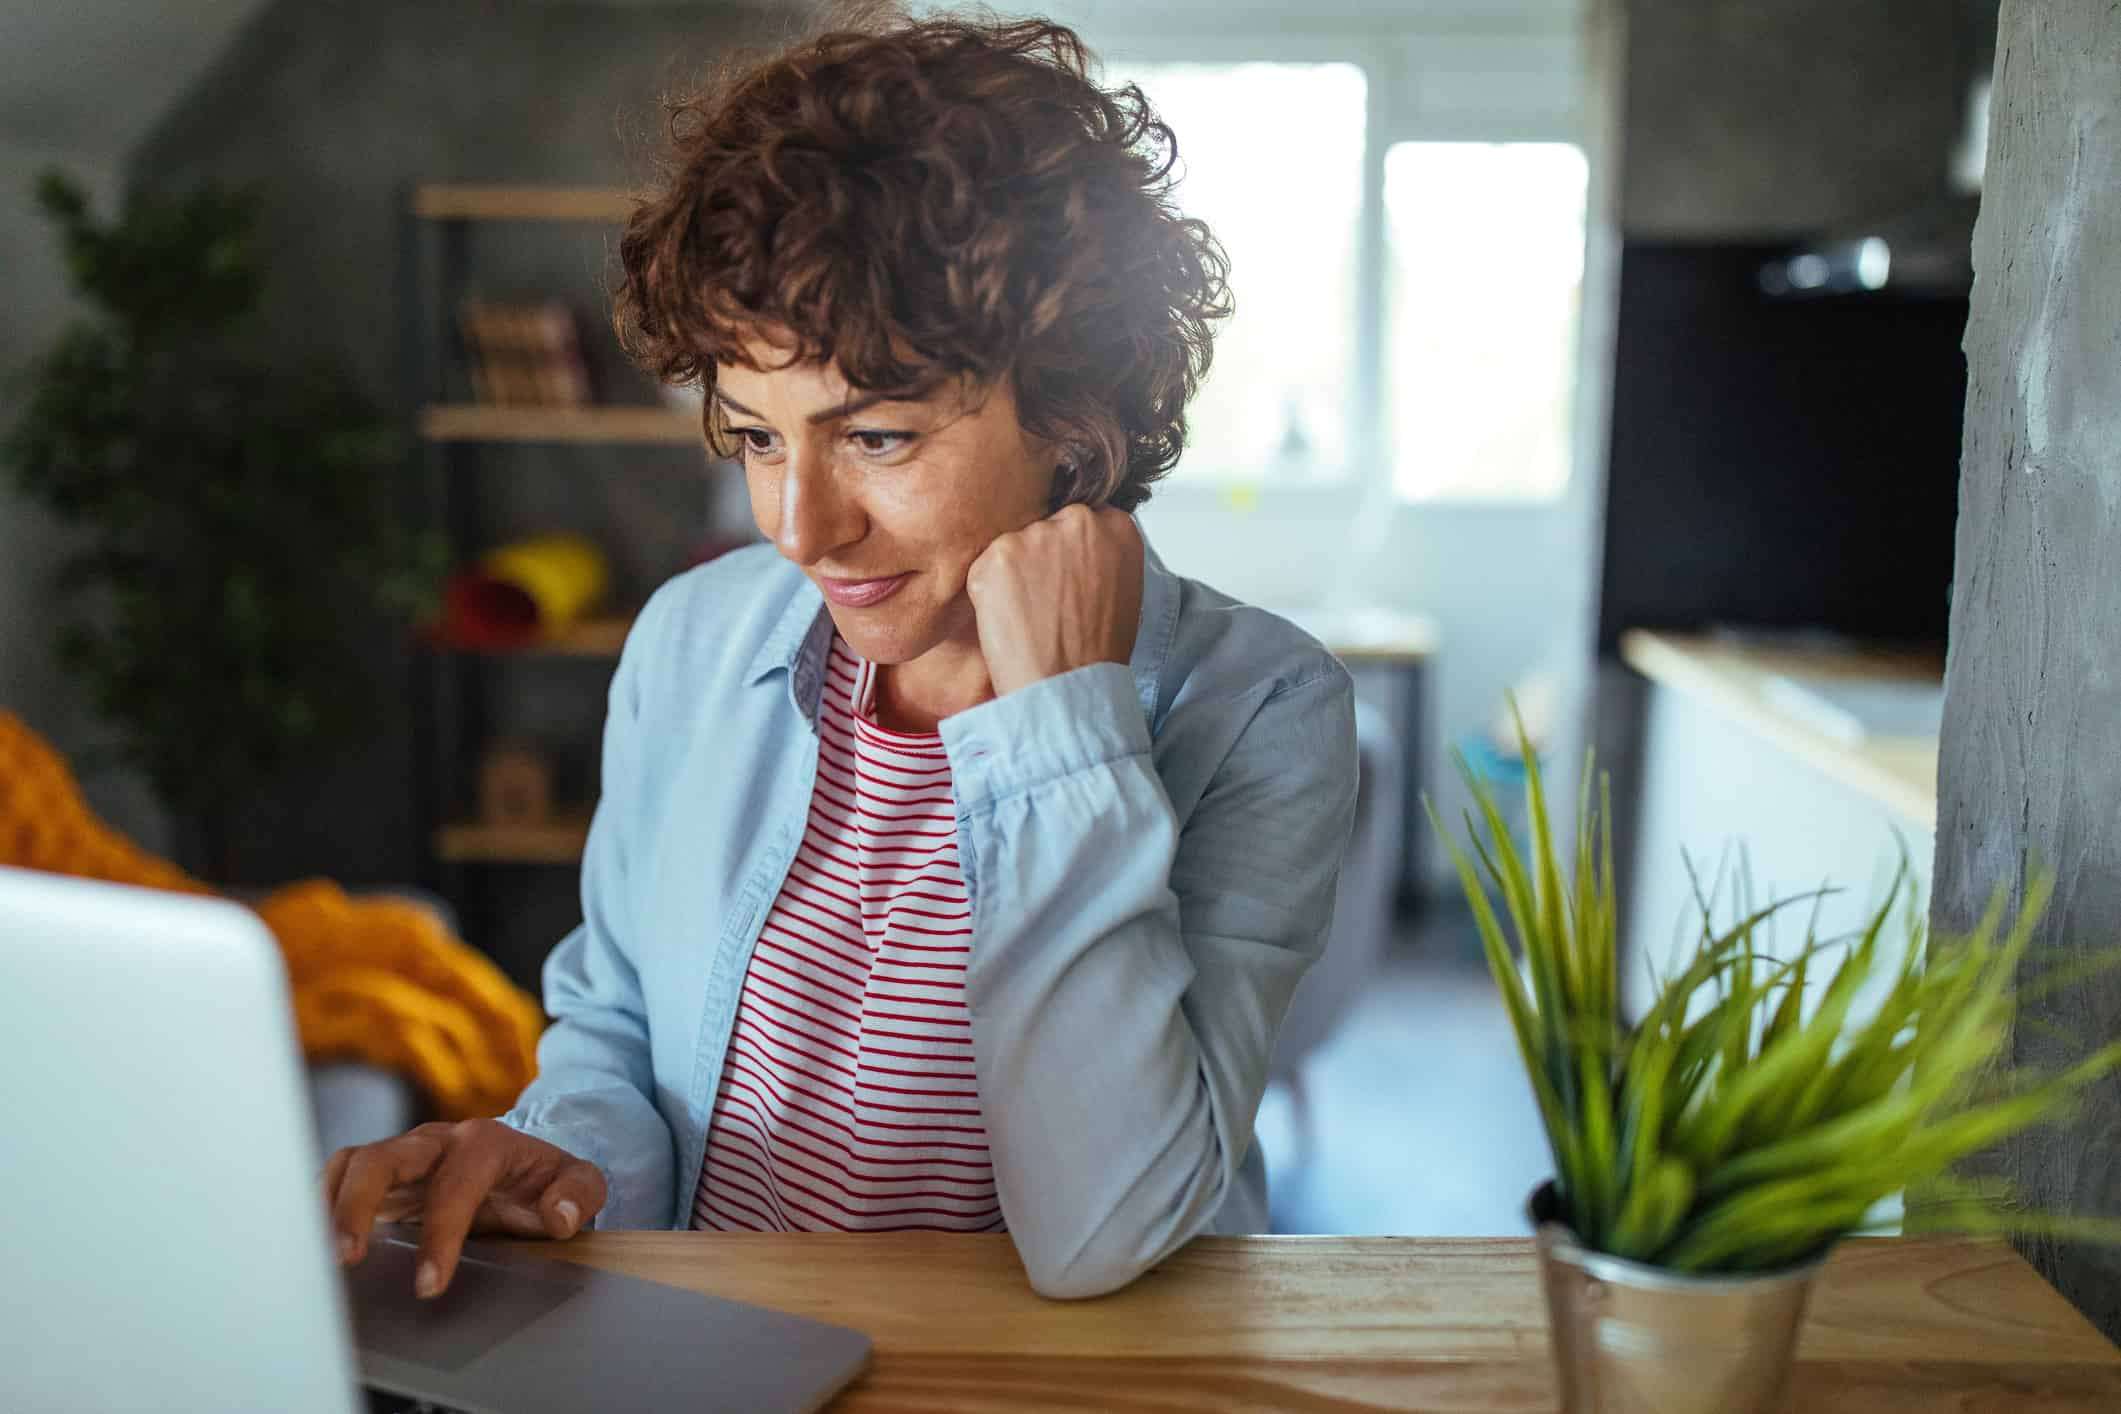 Woman using track-pad on laptop smiling